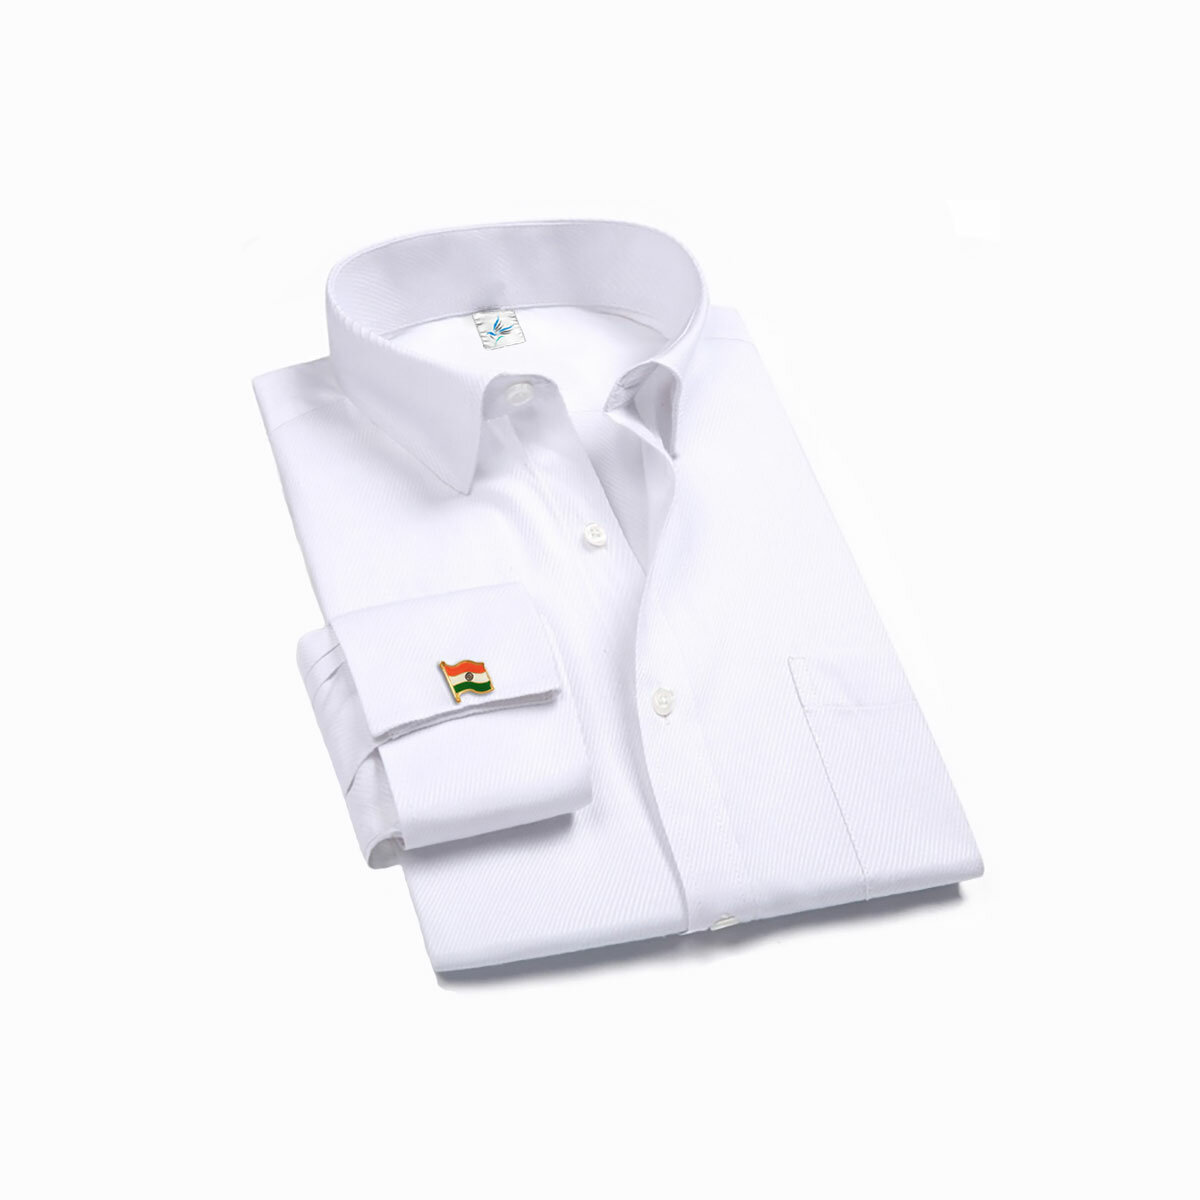 Indian National Flag Gold Plated Cufflinks On A Shirt